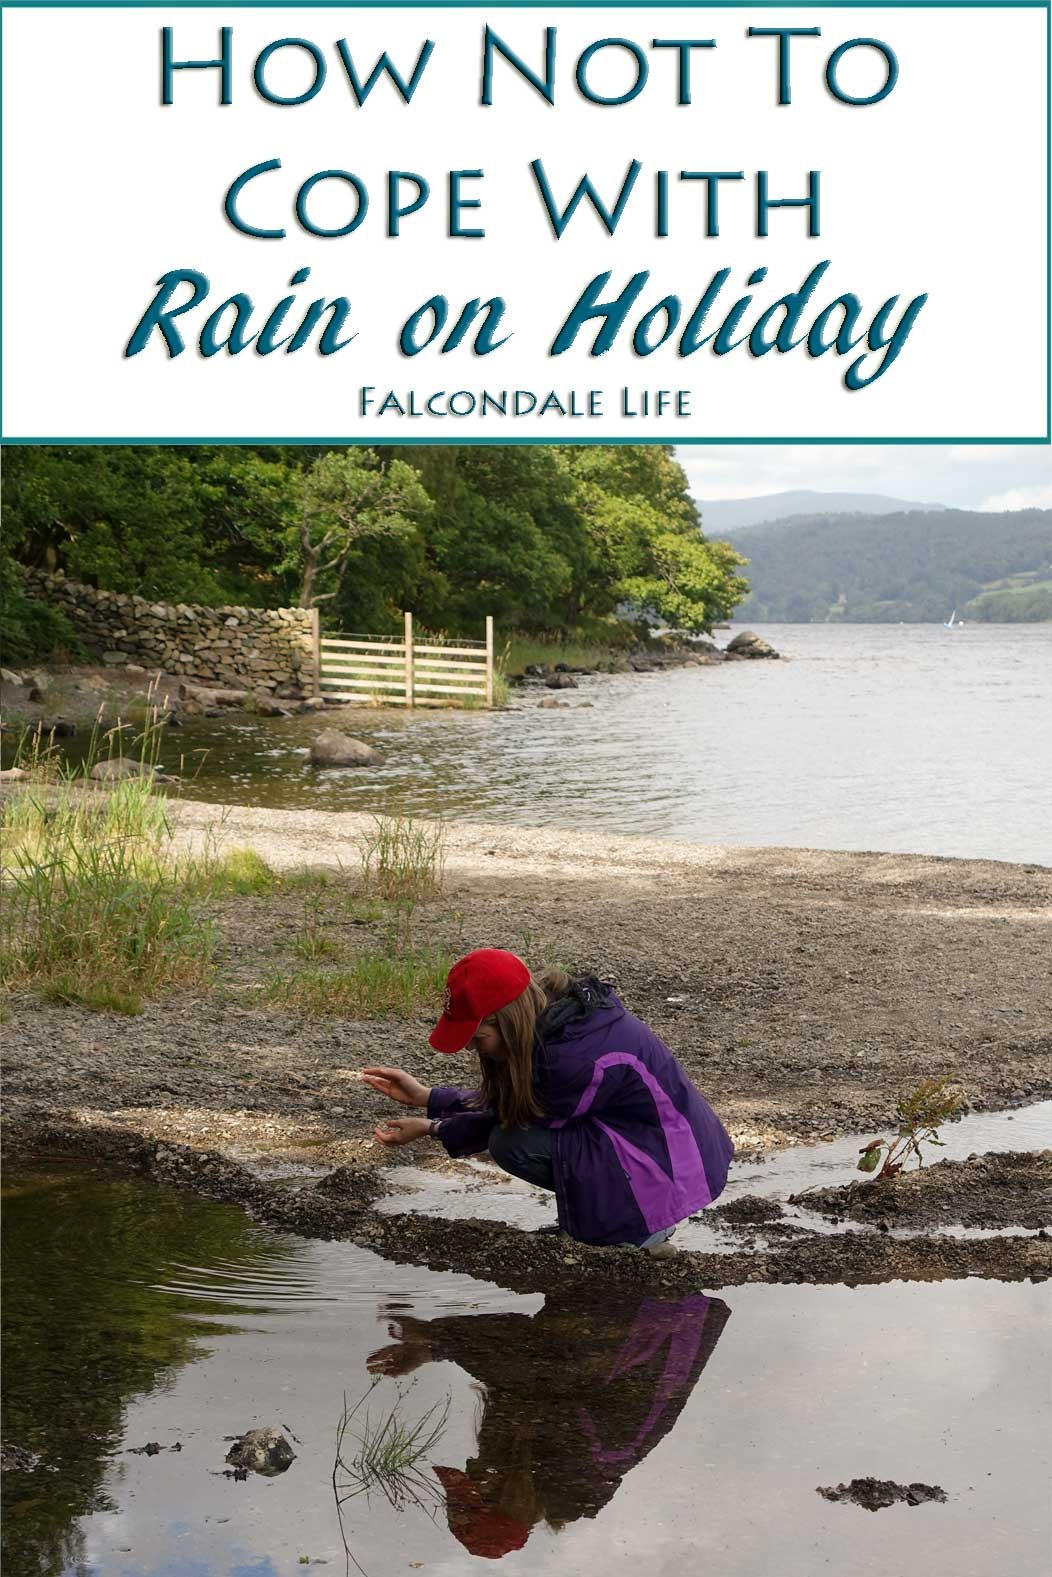 How not to cope with rain on holiday on Falcondale Life blog. Why does it always rain on me in the Lake district? But there are ways to let it ruin a holiday. Learn from my mistakes. Views of Coniston water, playing with puddles.